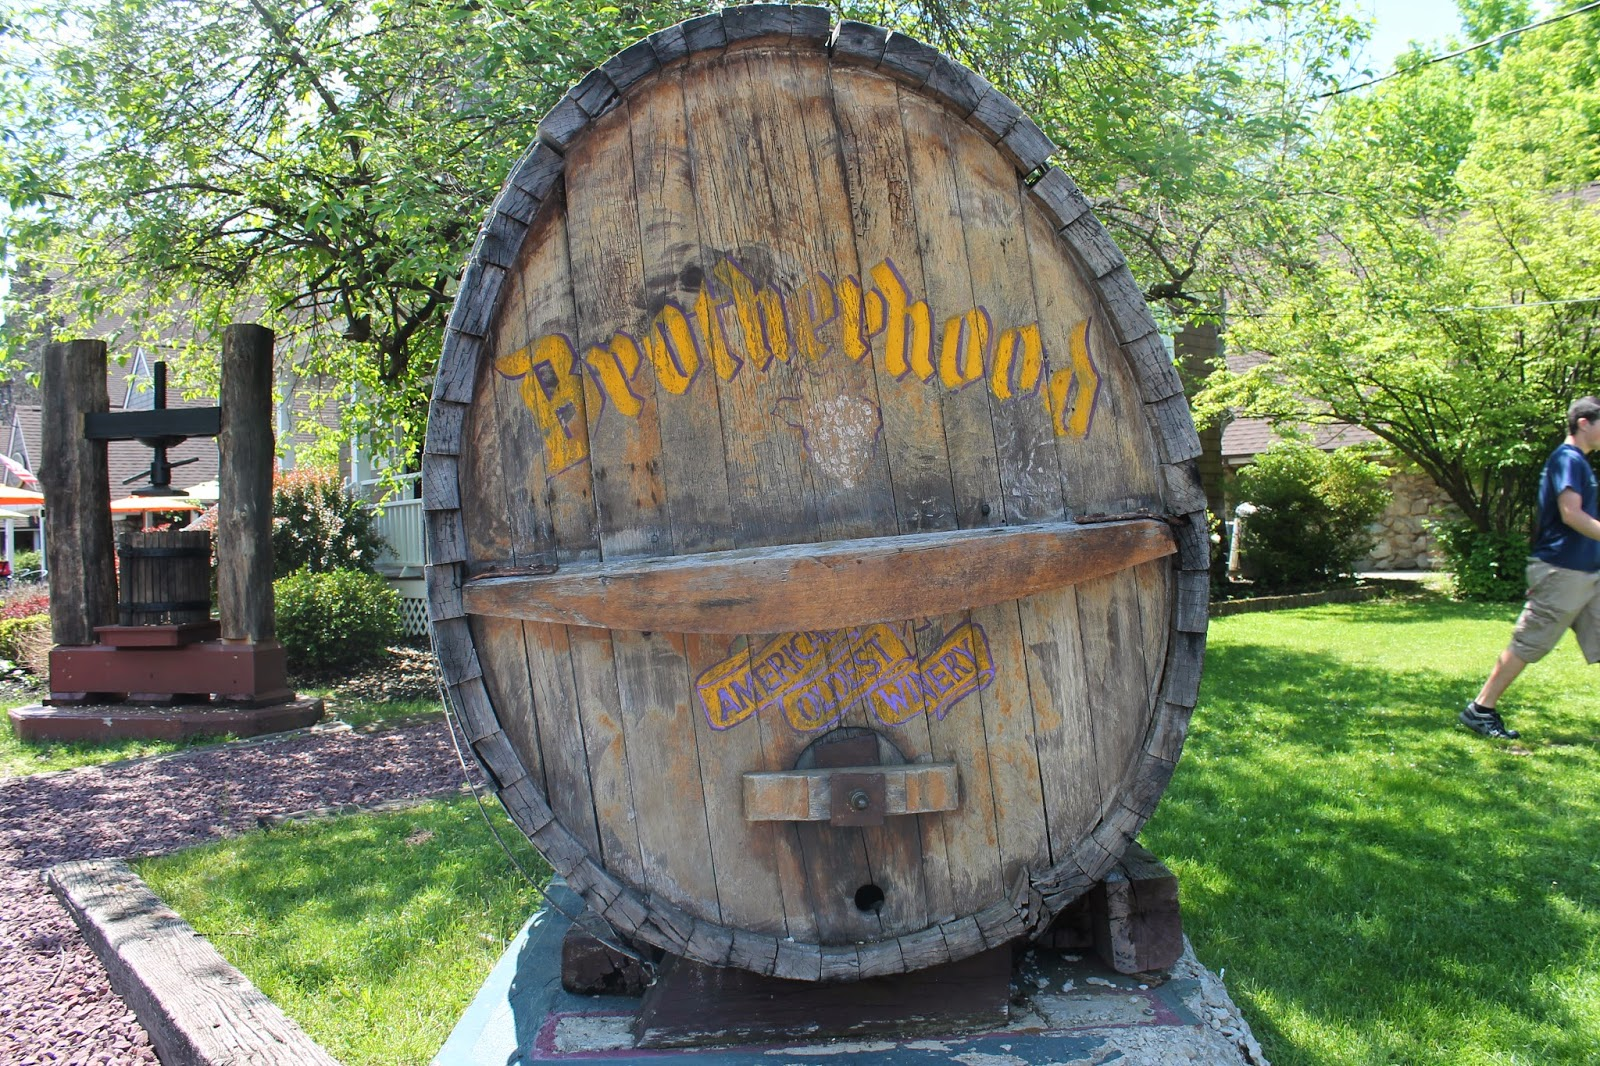 Brotherhood Winery wine barrel sign